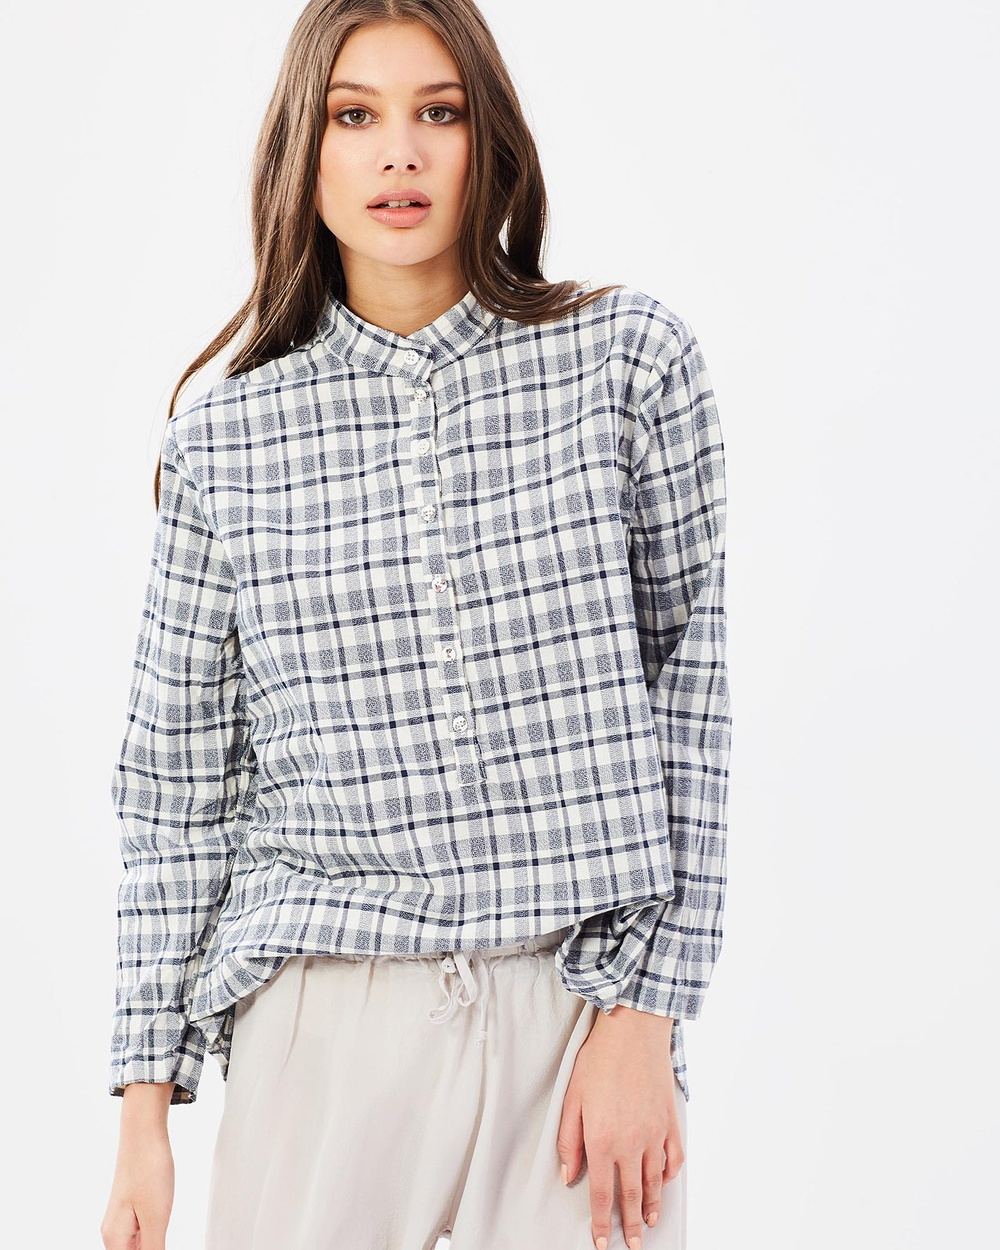 Photo of Primness Primness Check Pull On Tops Check Check Pull On - The Check Pull On by Primness is the classic boyfriend style cotton shirt. With a navy check print all over, a boxy over-sized fit and mandarin collar the pull on will be on high rotation in your wardrobe. - Length 82cm- Beige base with navy check pattern - Mandarin collar - Shell buttons - Low back hem - Half button up front - Made in Australia Material: 100% Woven Cotton